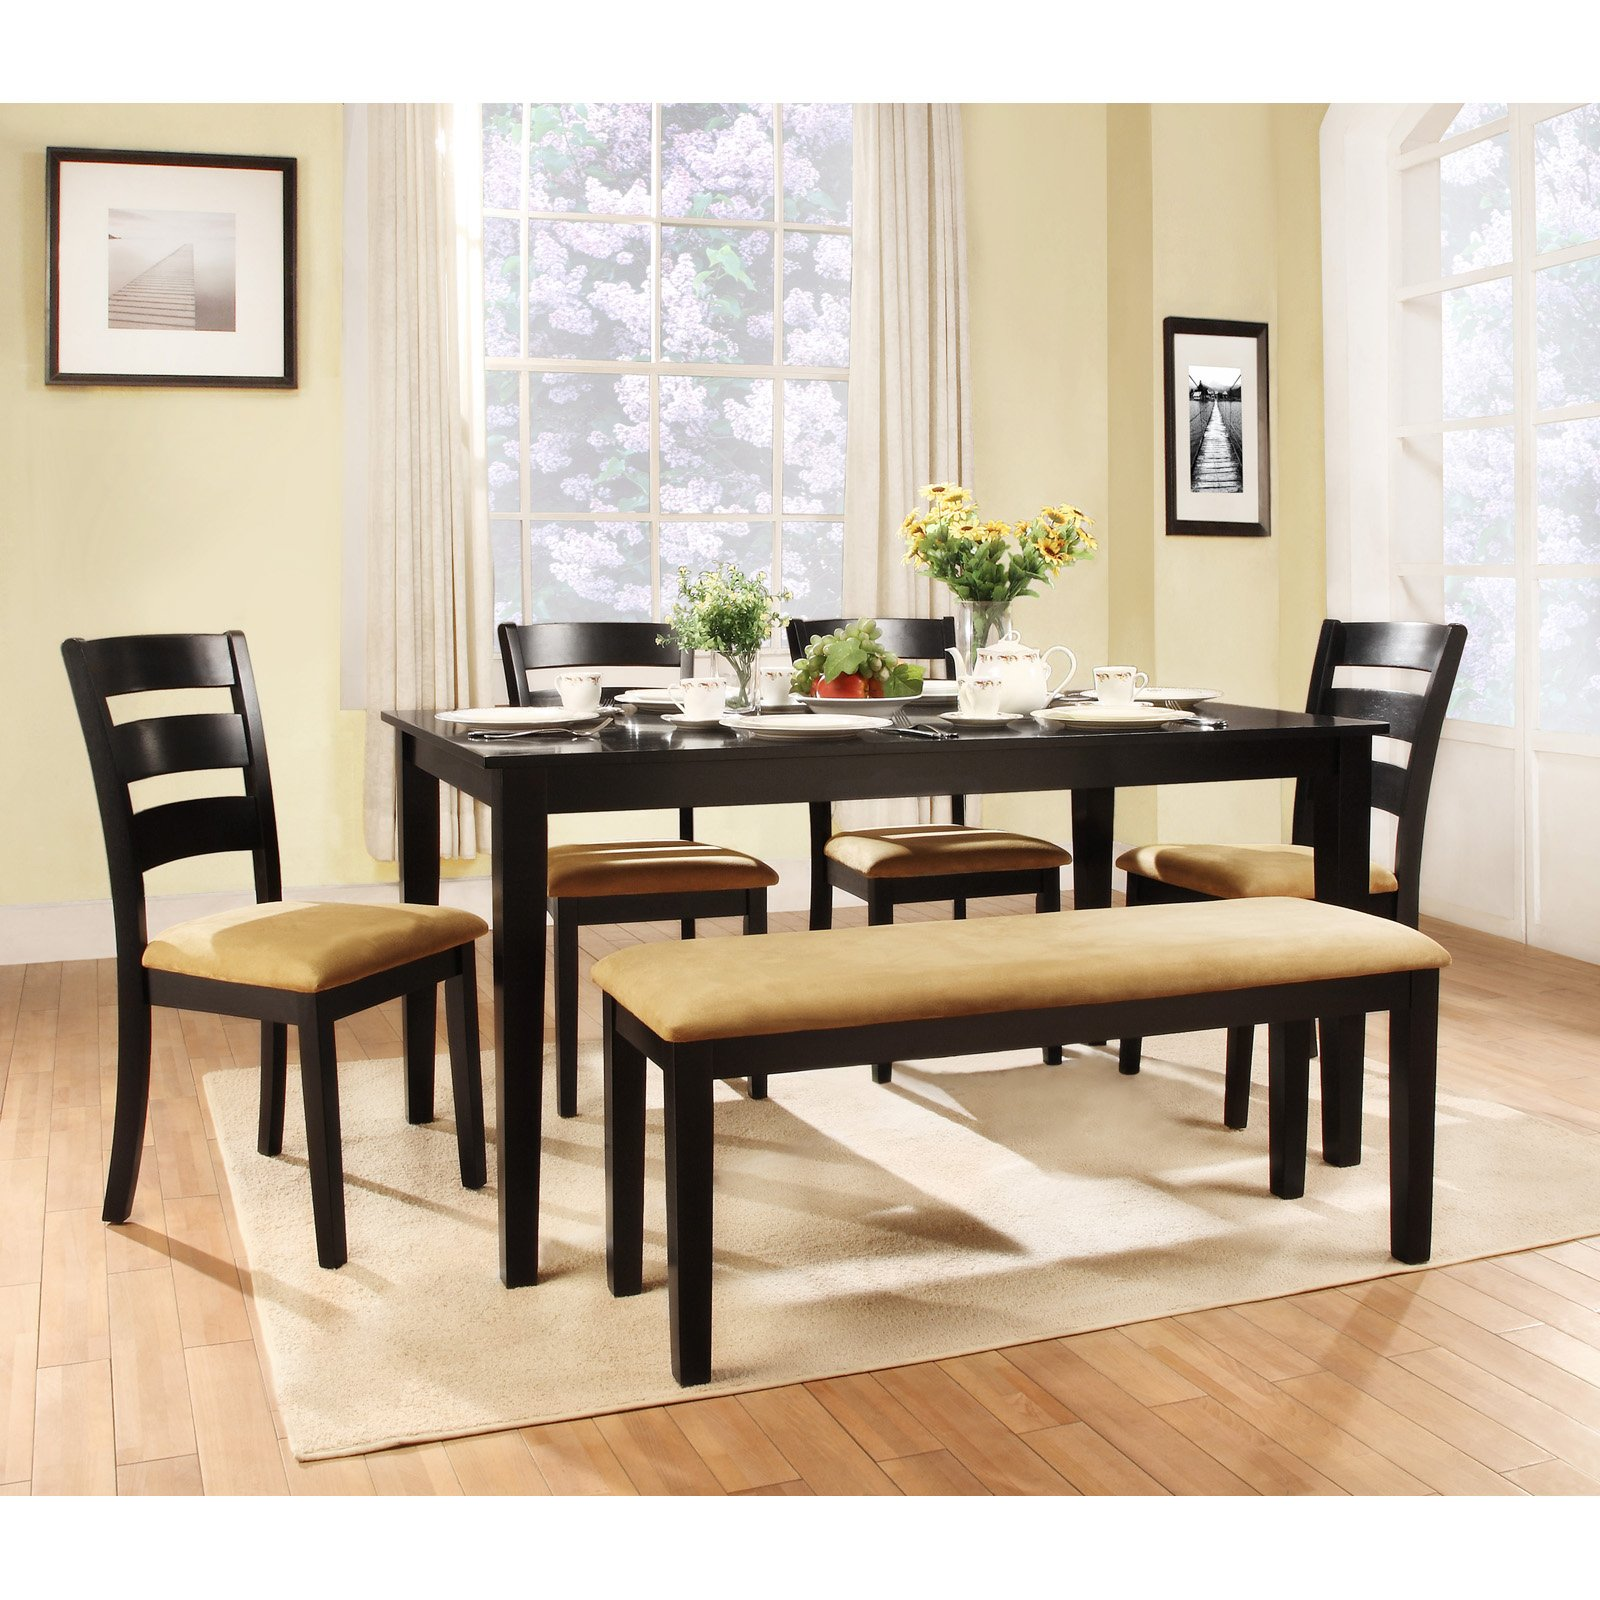 Modern bench style dining table set ideas homesfeed for Dining room table and bench